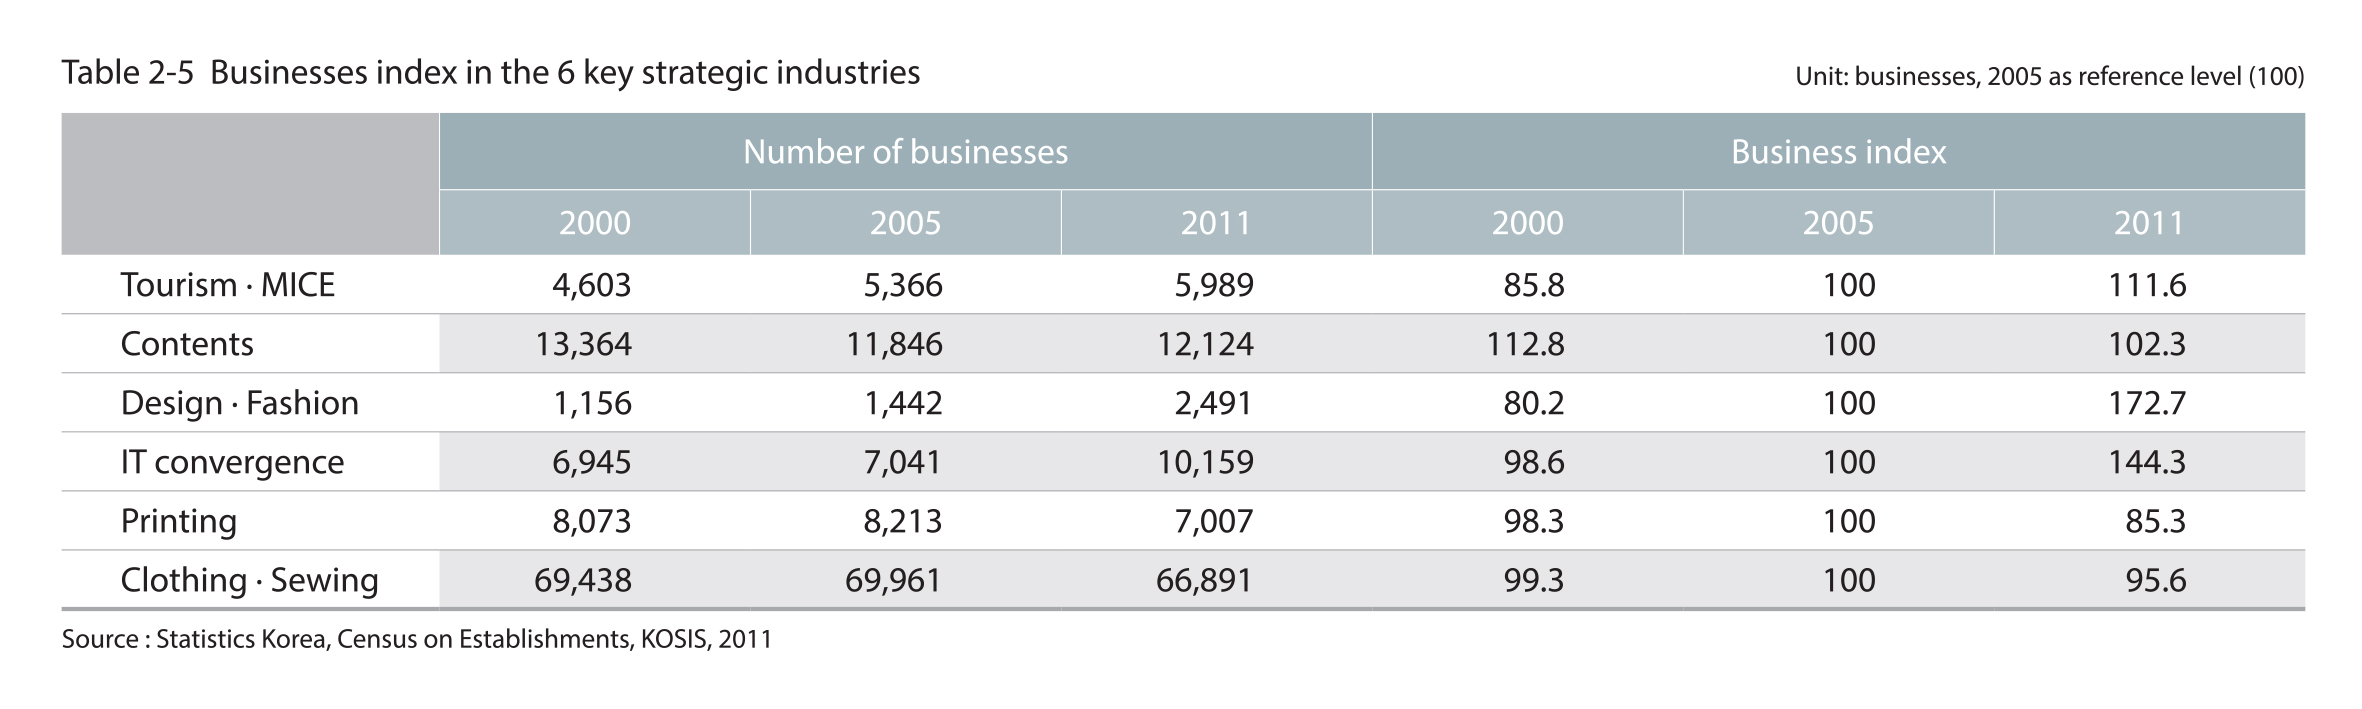 Businesses index in the 6 key strategic industries